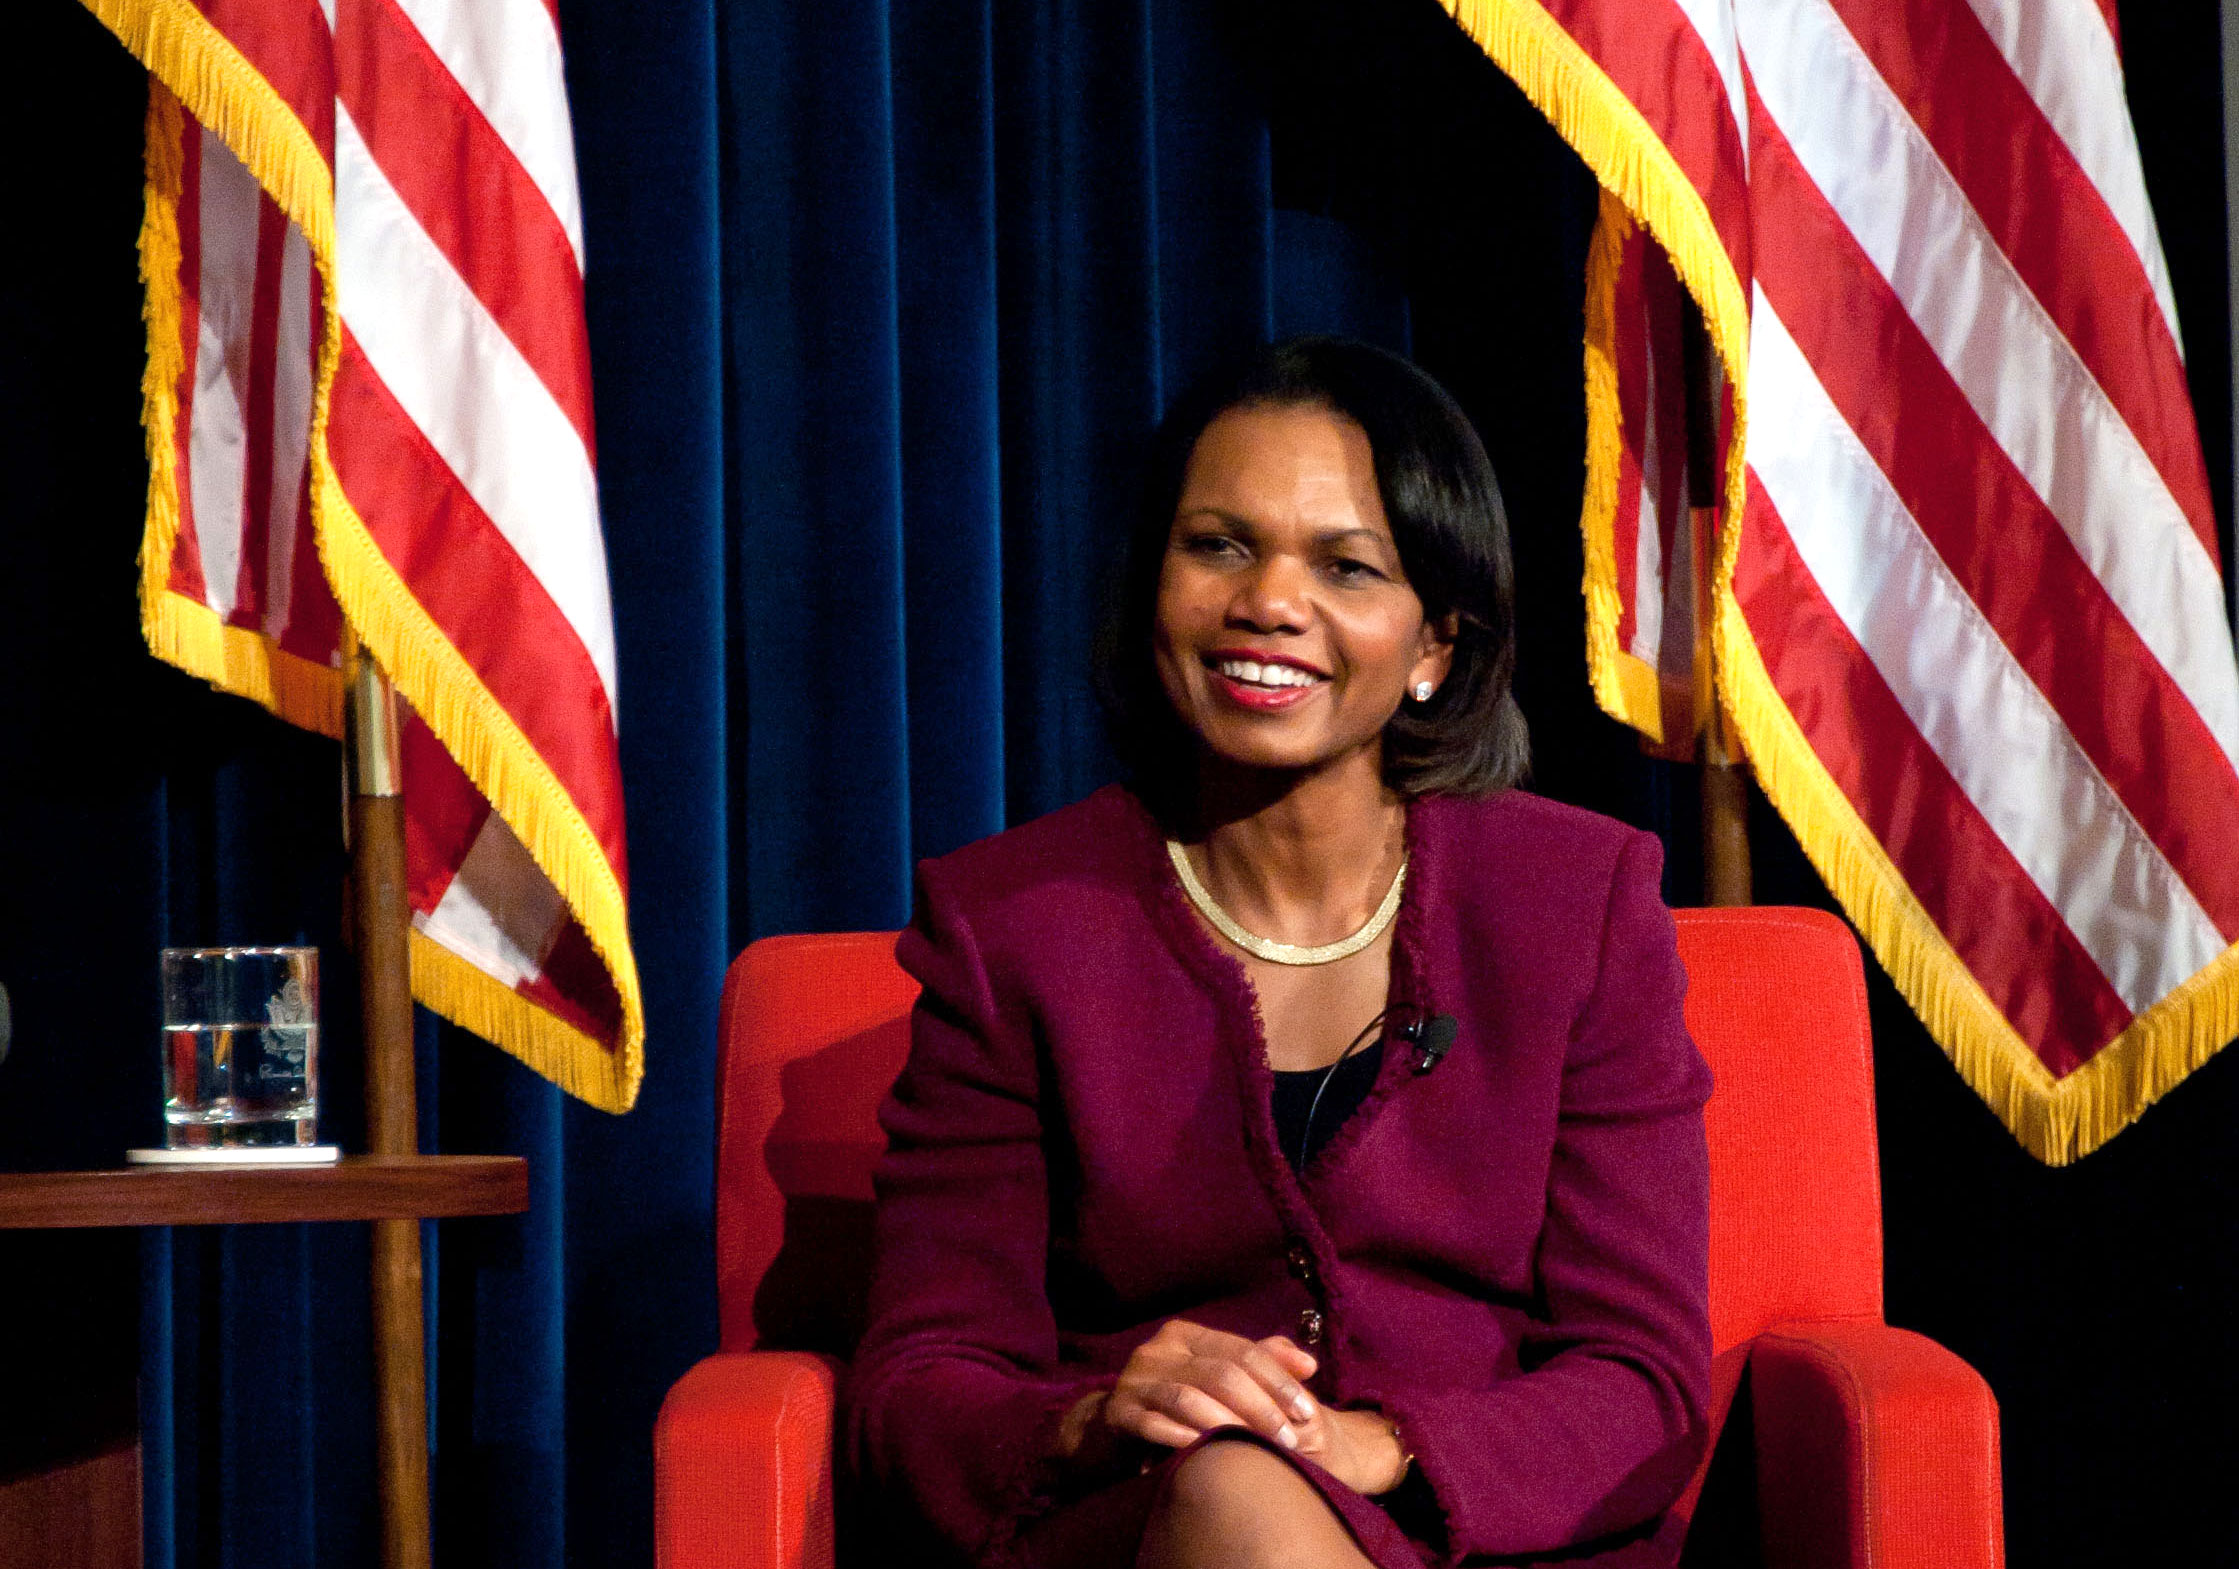 Event - A Reagan Forum and Book Signing with Condoleezza Rice